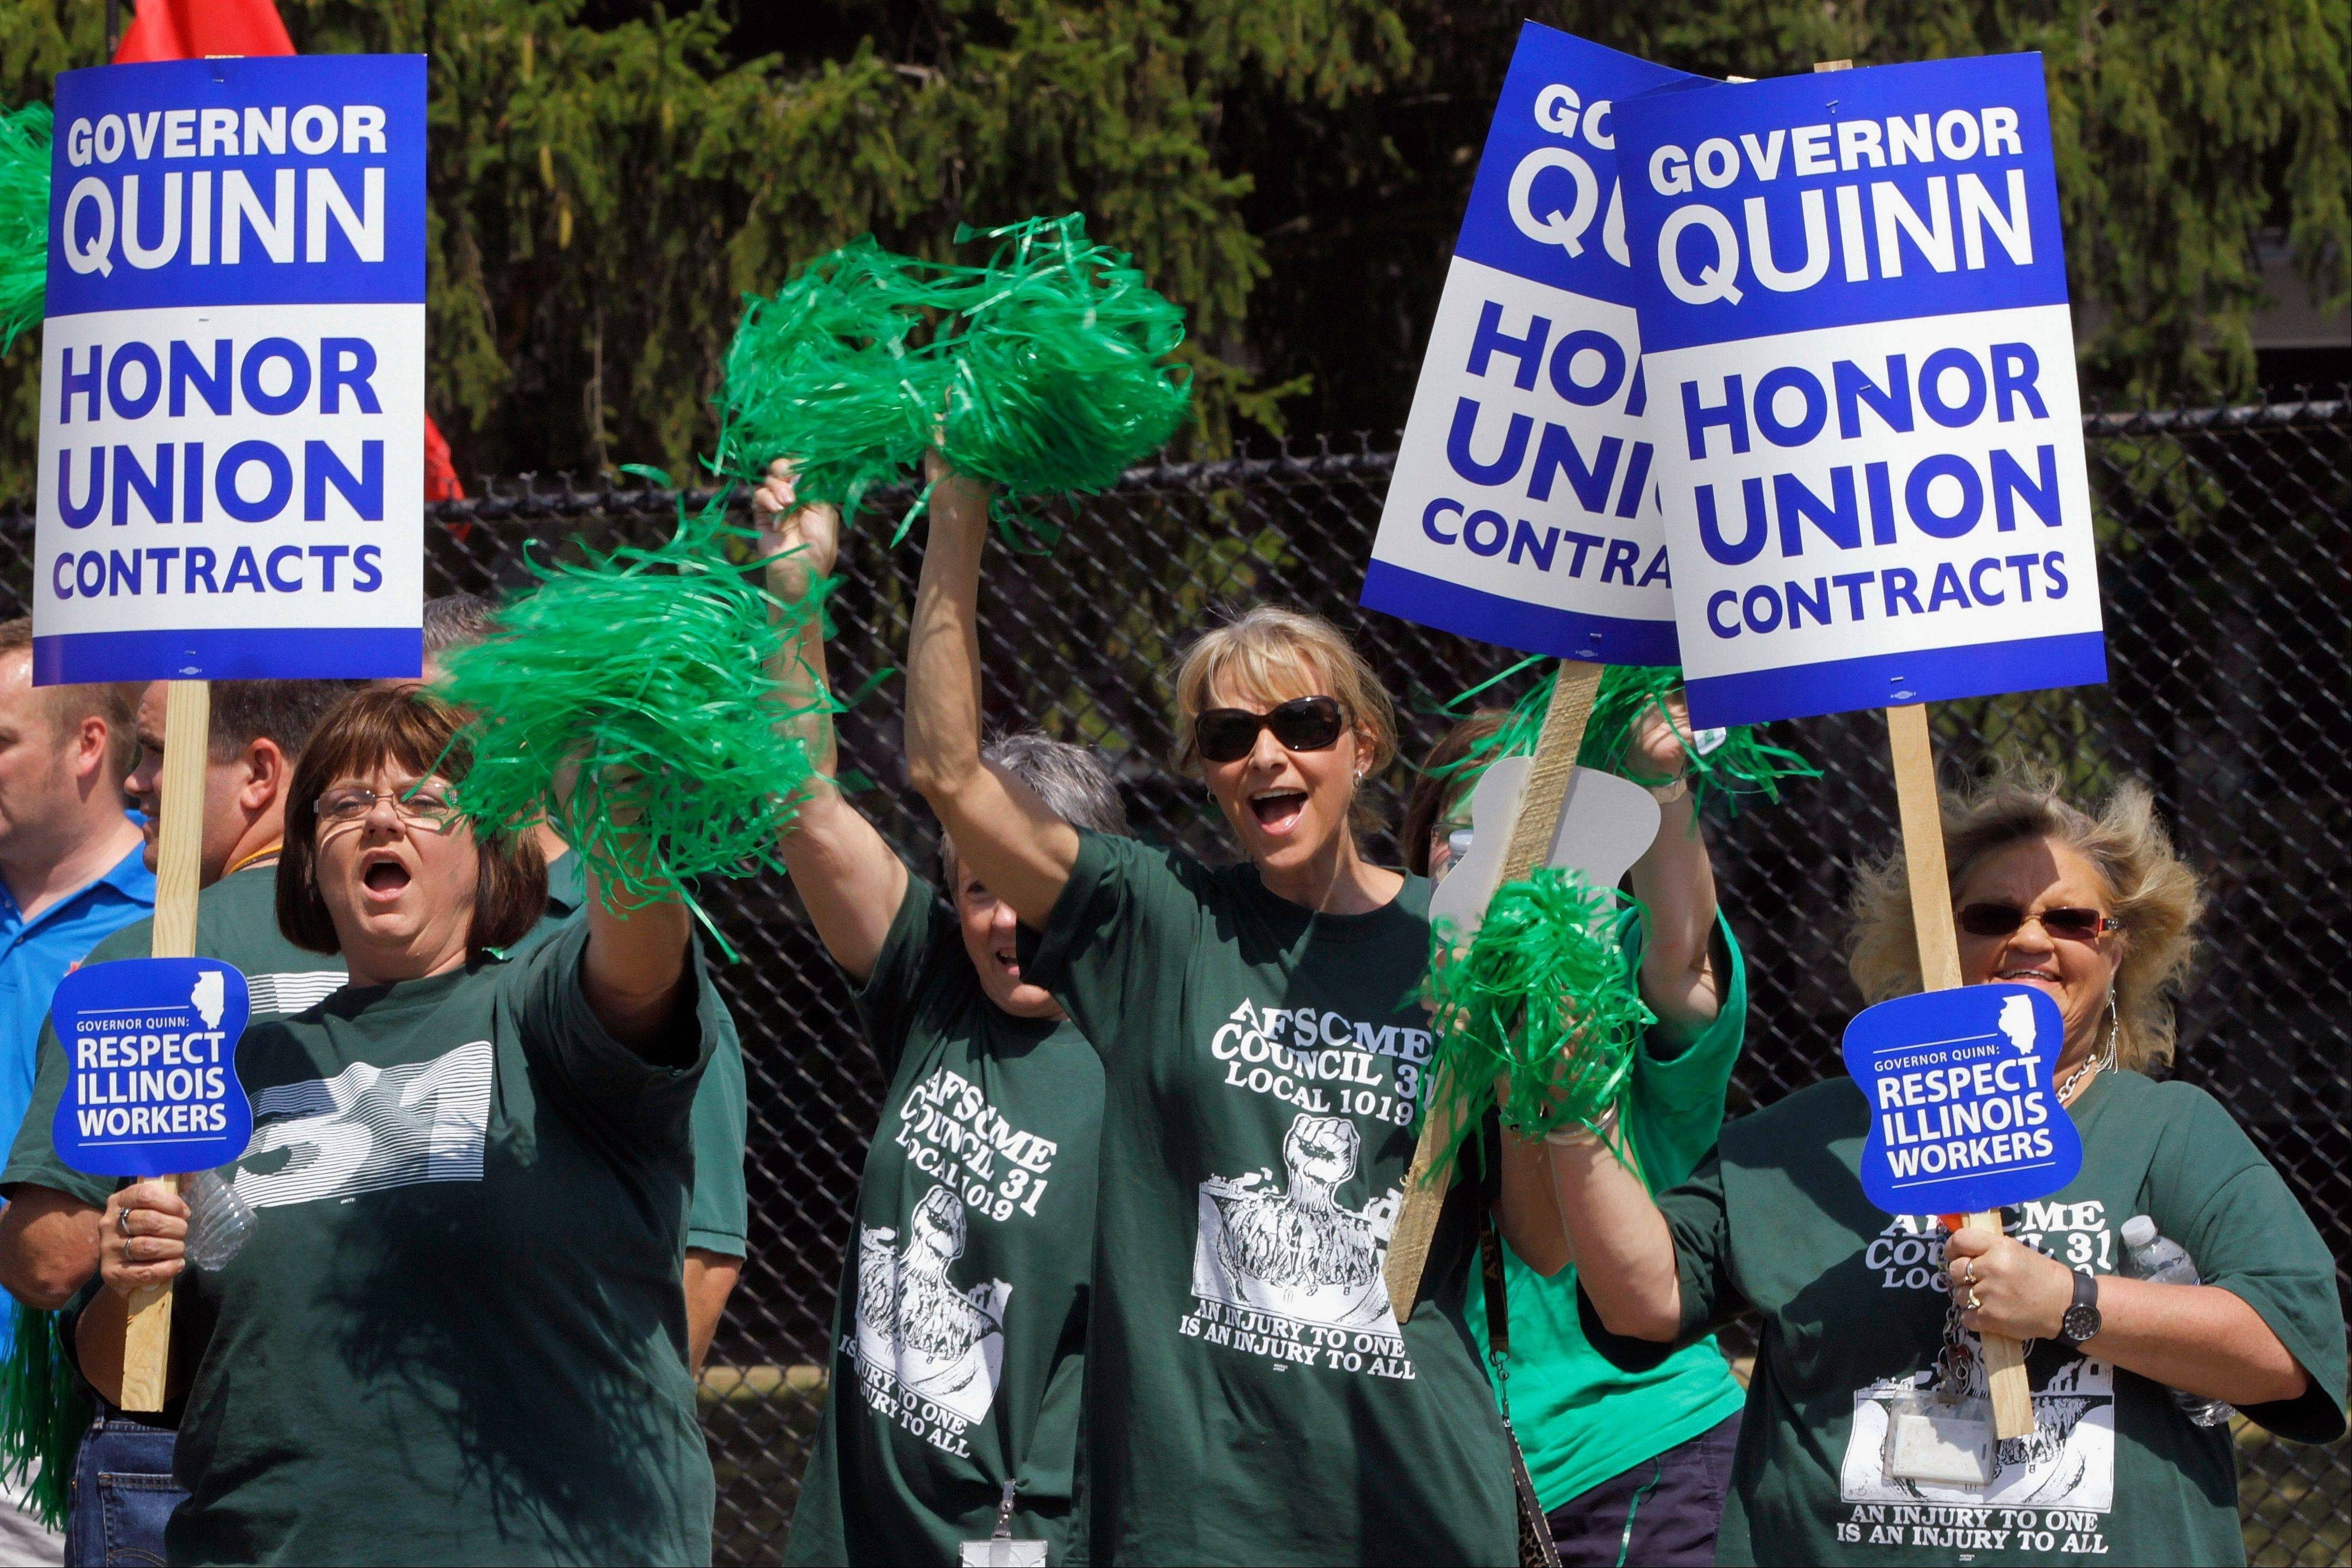 Union members, supporters and labor leaders protest against Illinois Gov. Pat Quinn at the state fair in Springfield. On Thursday, Quinn's office confirmed that the largest state employee union in Illinois and his administration have reached a tentative contract agreement. Negotiations between the American Federation of State, County and Municipal Employees union and Quinn's office have been contentious and union members had started preparing for a strike.